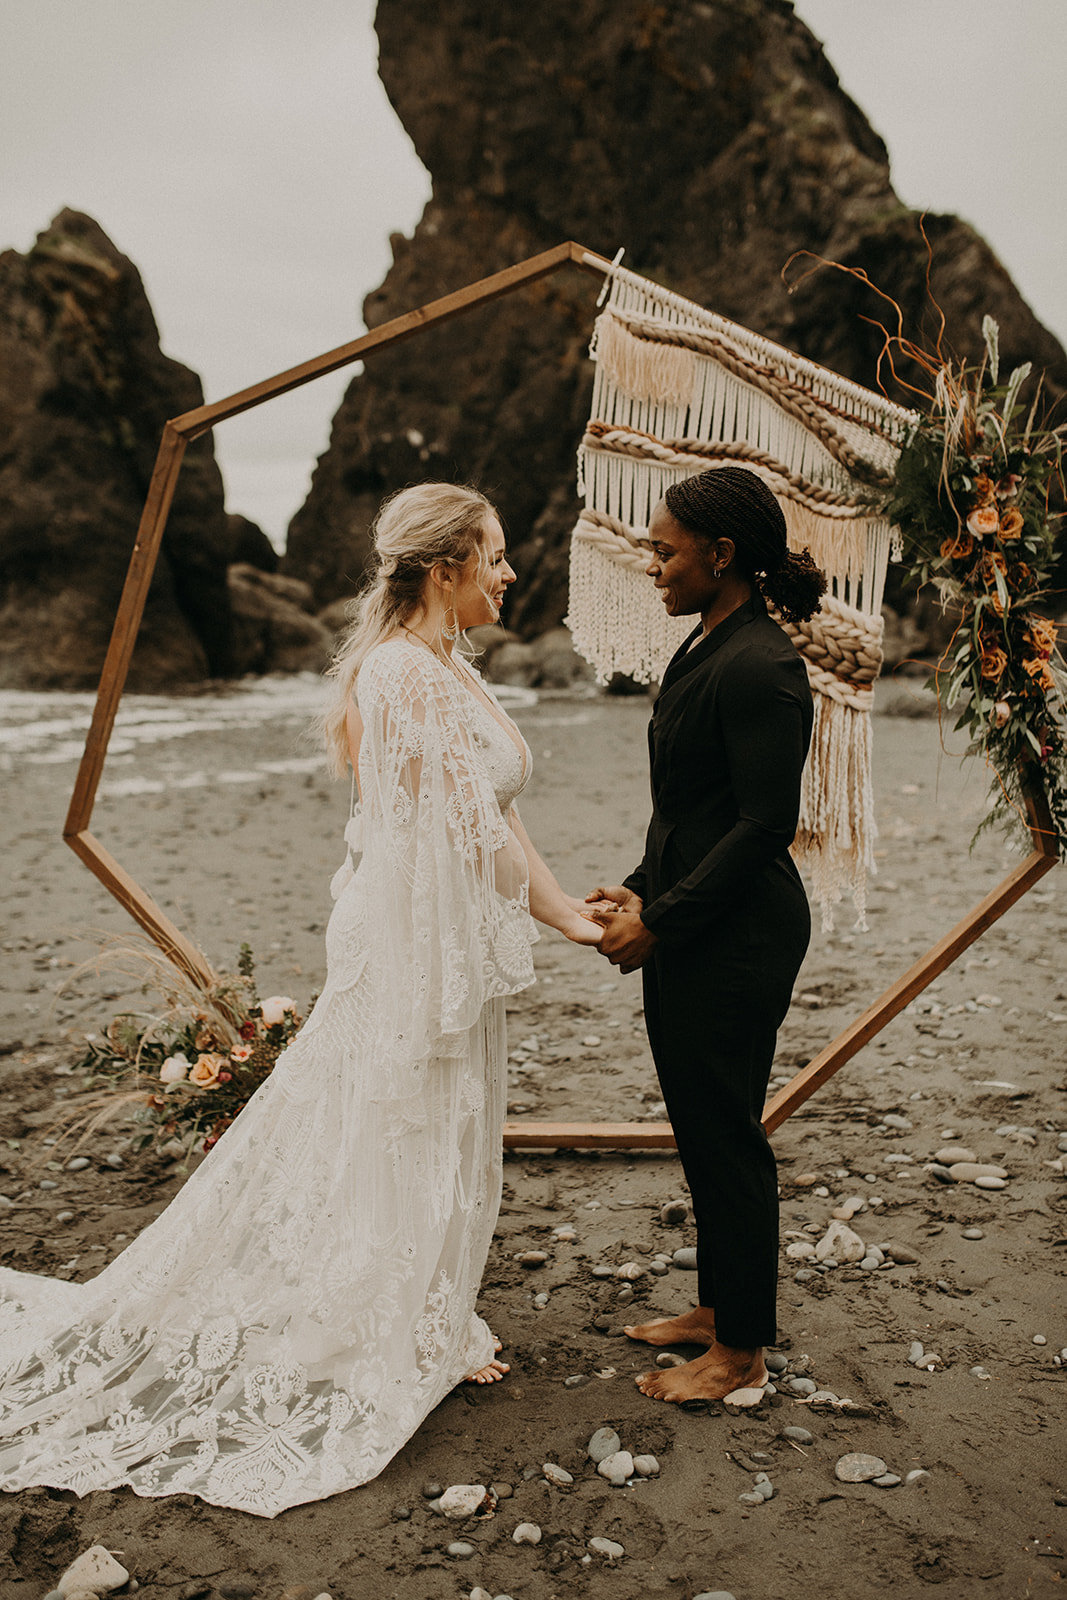 Ruby_Beach_Styled_Elopement_-_Run_Away_with_Me_Elopement_Collective_-_Kamra_Fuller_Photography_-_Ceremony-11